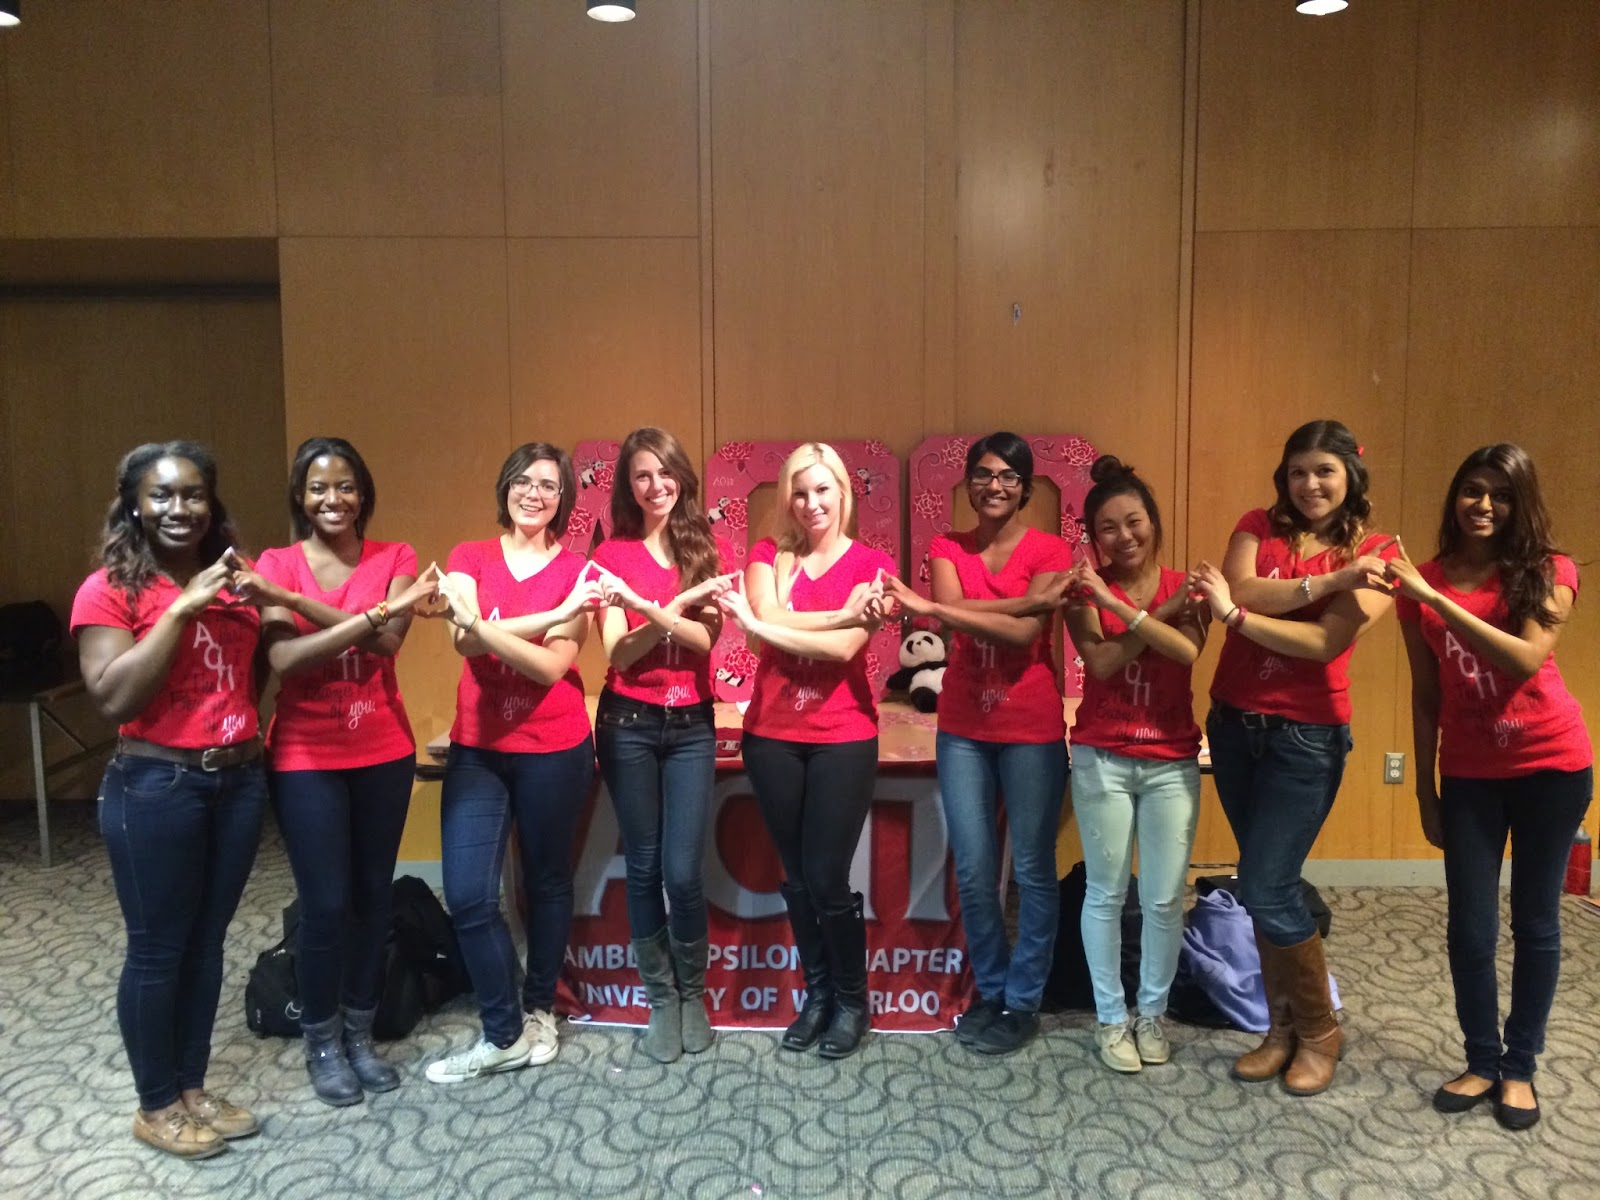 Le Northern Belle | How to Rush a Canadian Sorority | AOII Throw What You Know